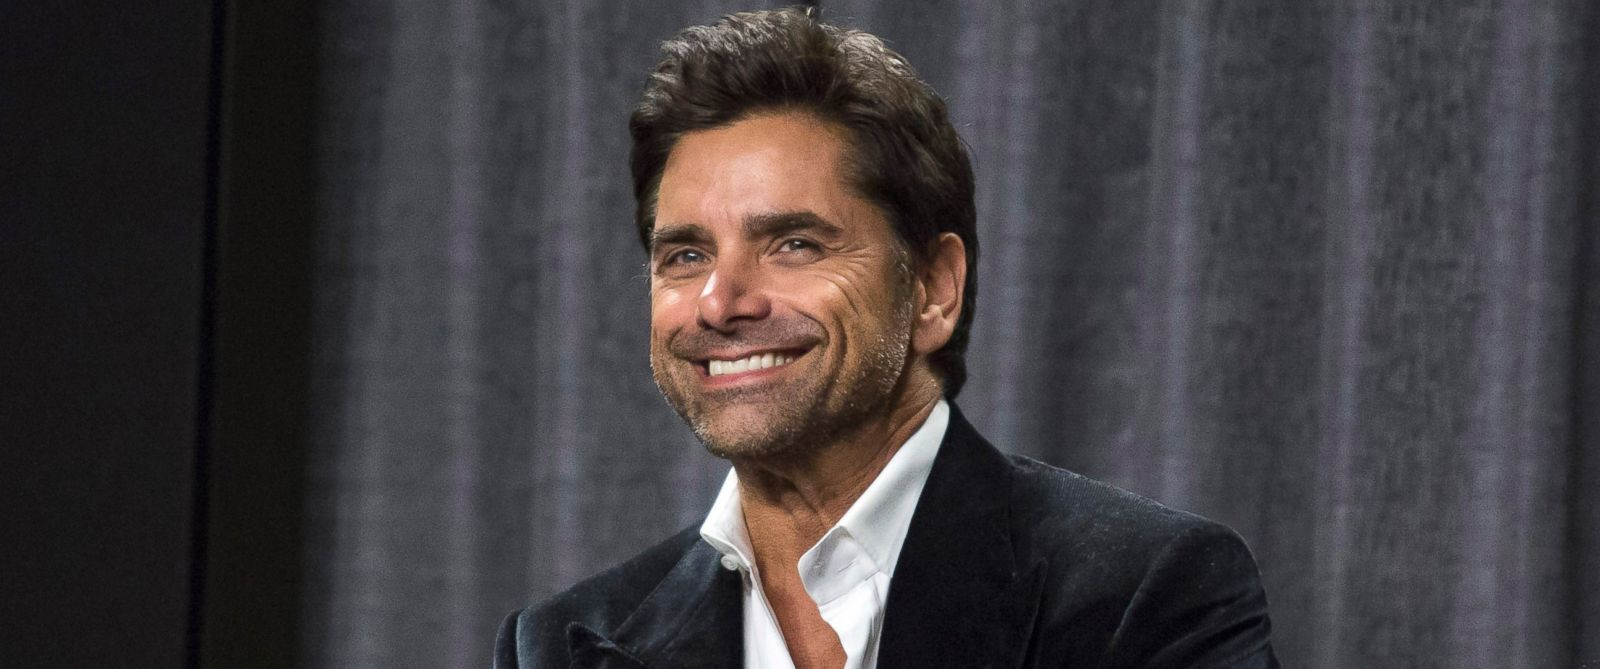 """PHOTO: John Stamos attends SAG Foundations """"Conversations"""" series screening of """"Grandfathered"""" at SAG Foundation Actors Center, Nov. 3, 2015 in Los Angeles."""